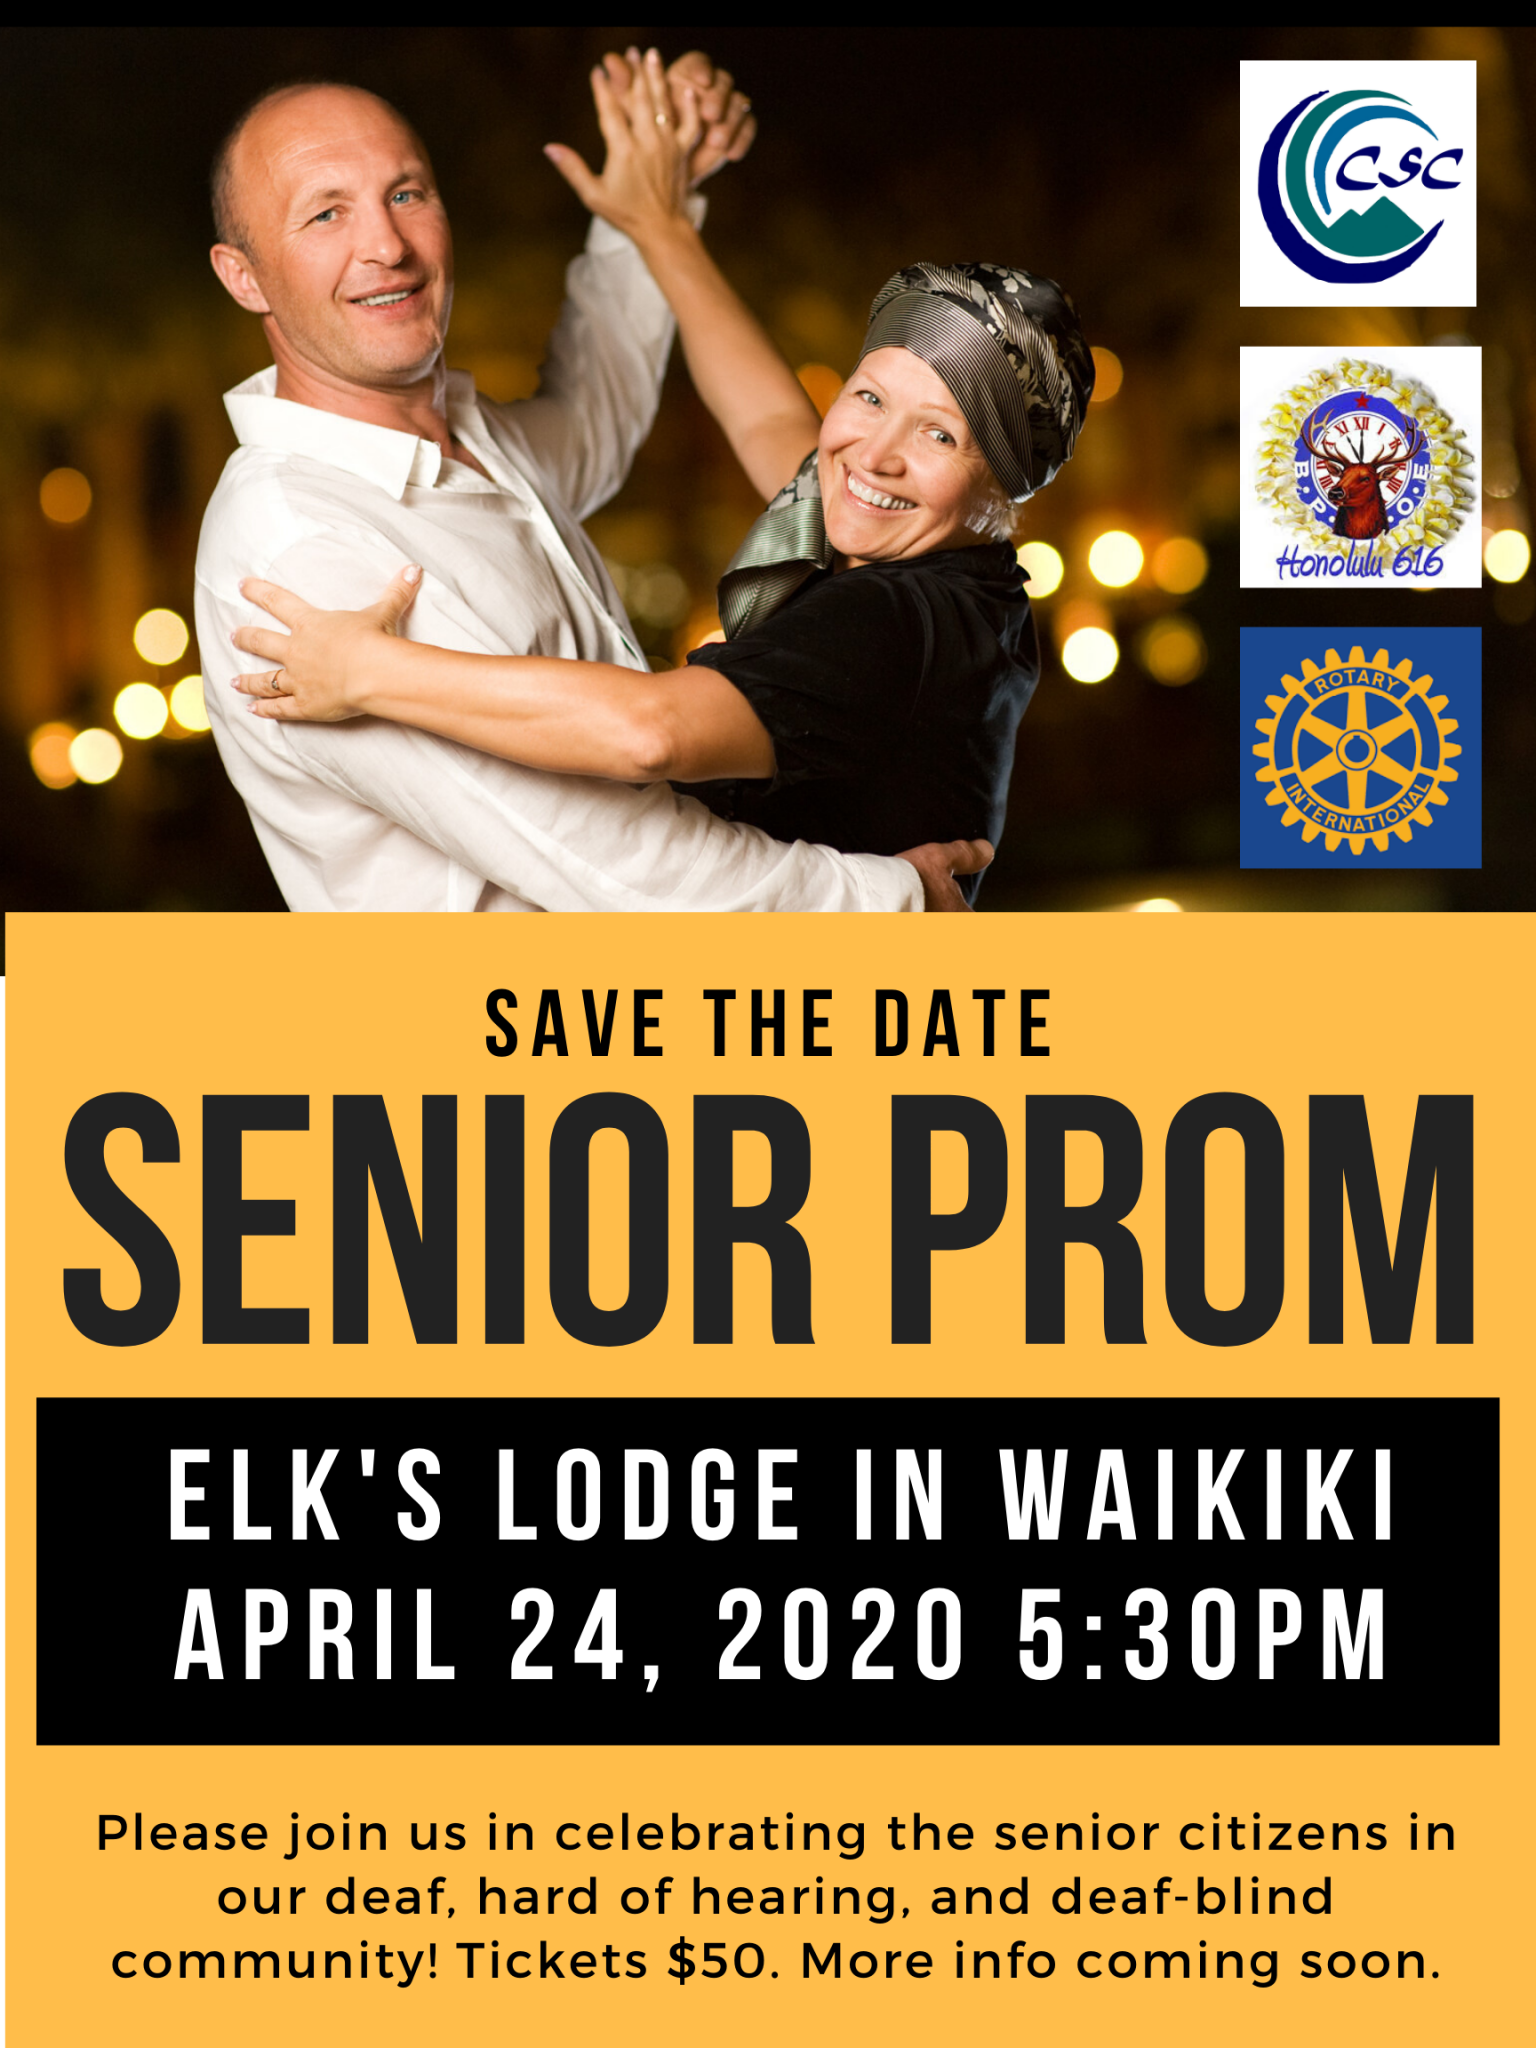 Flyer for Senior Prom 4/24 5:30 pm Elk's Club $50